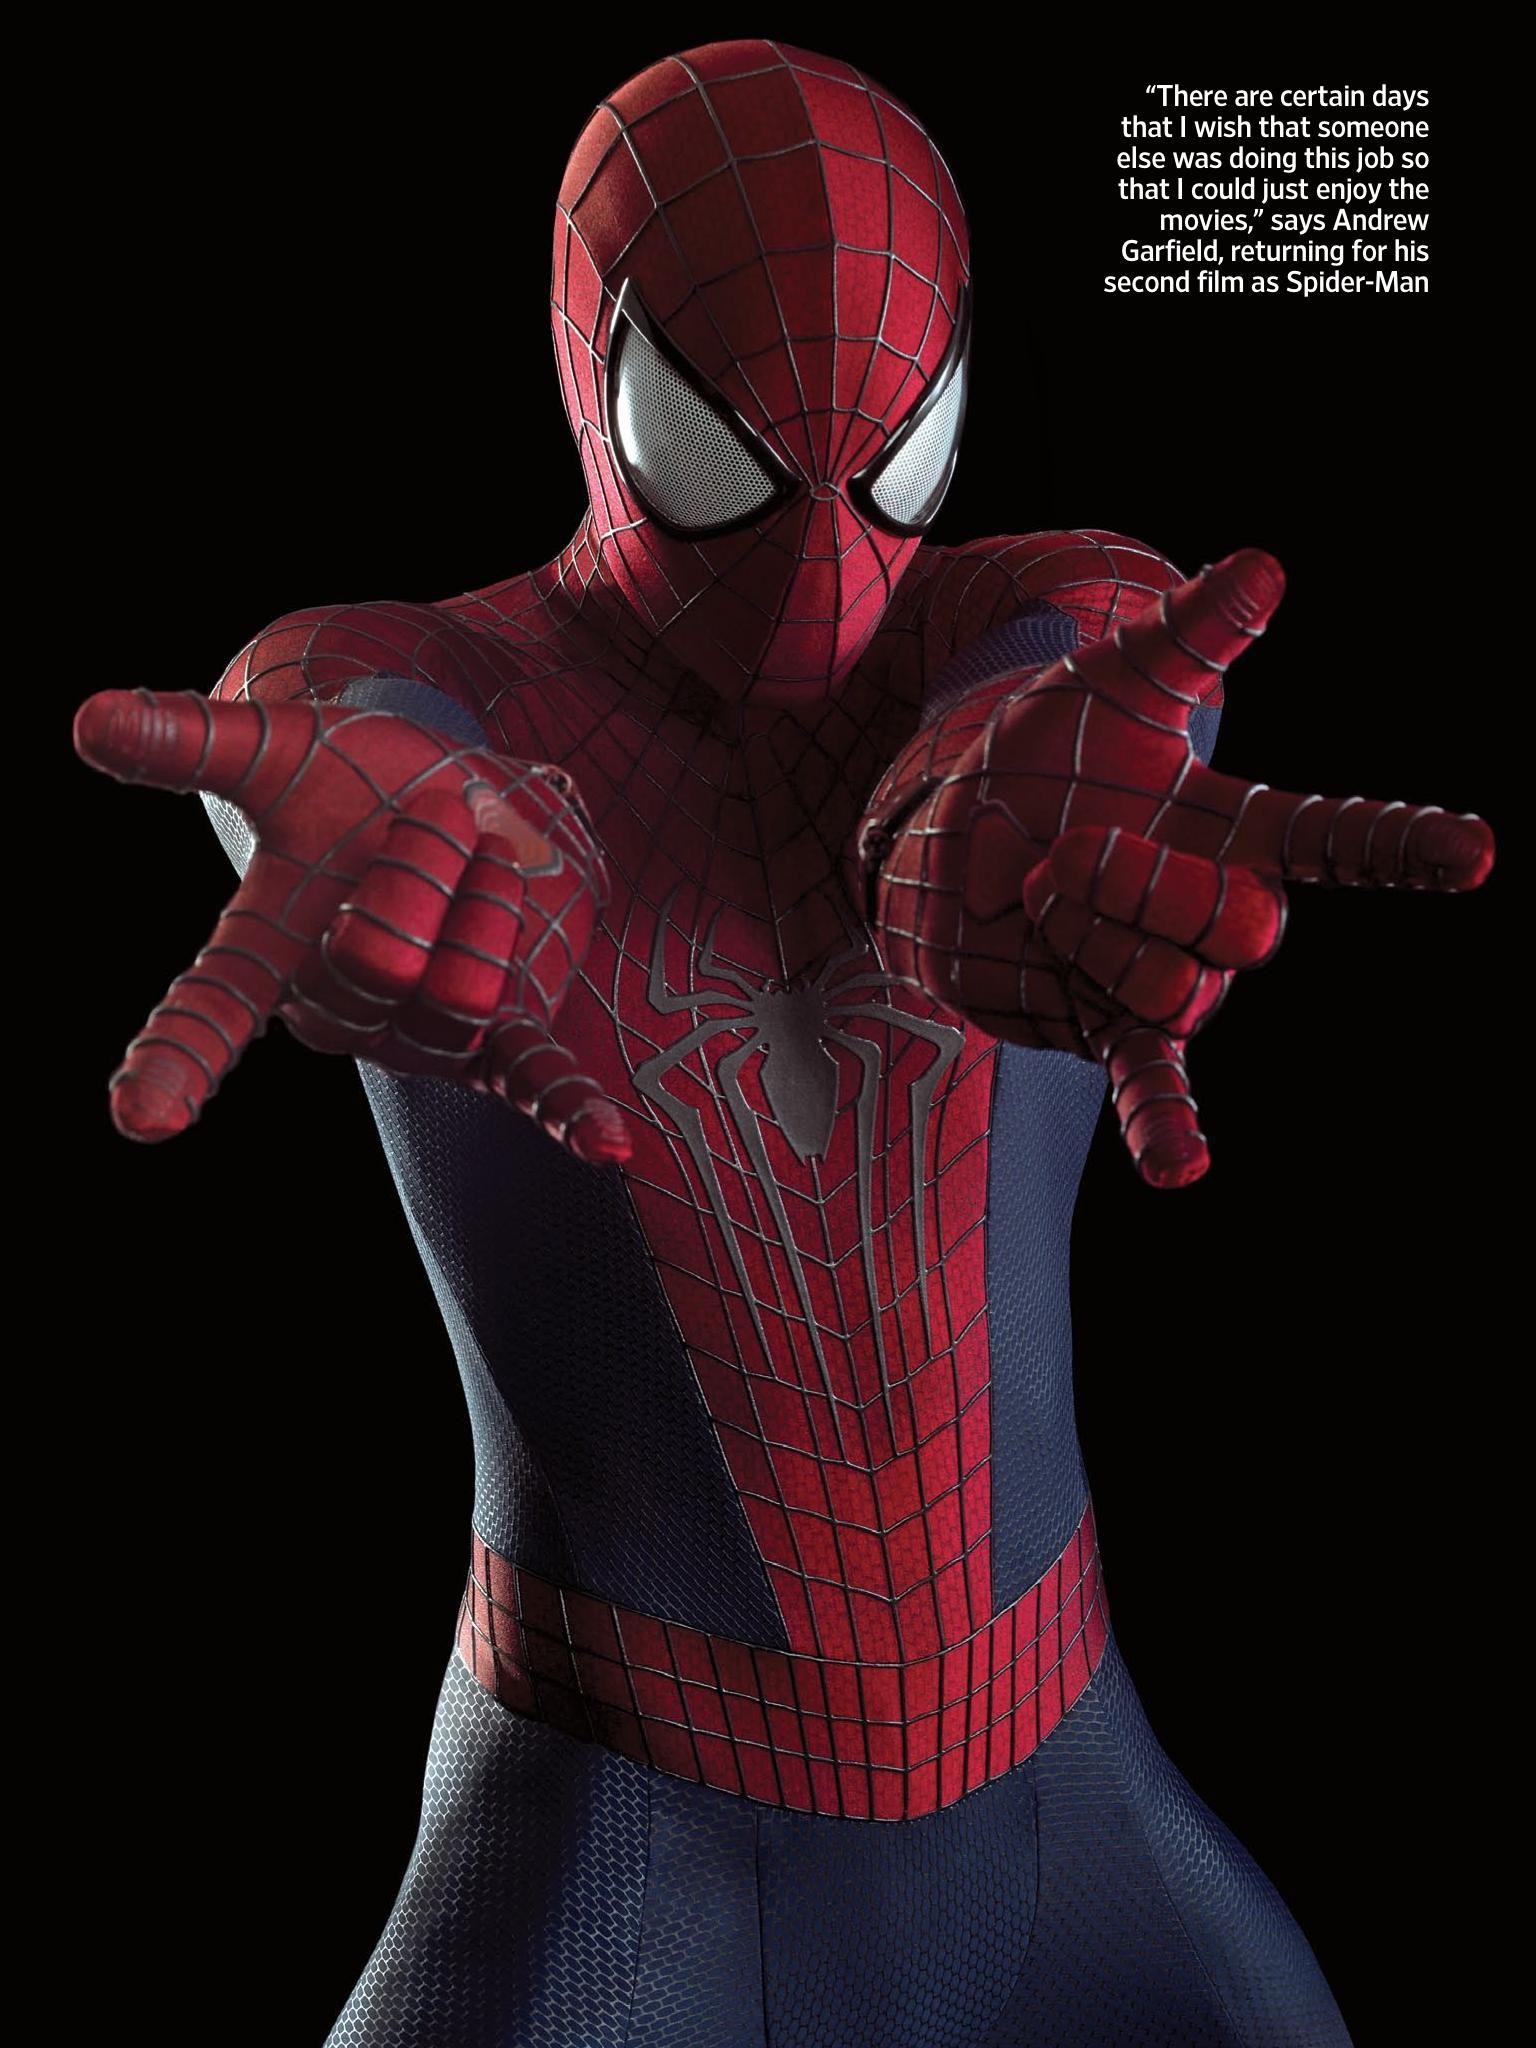 Movie - The Amazing Spider-Man 2 The_amazing_spider_man_2_face_a_face_galerie_photo-41